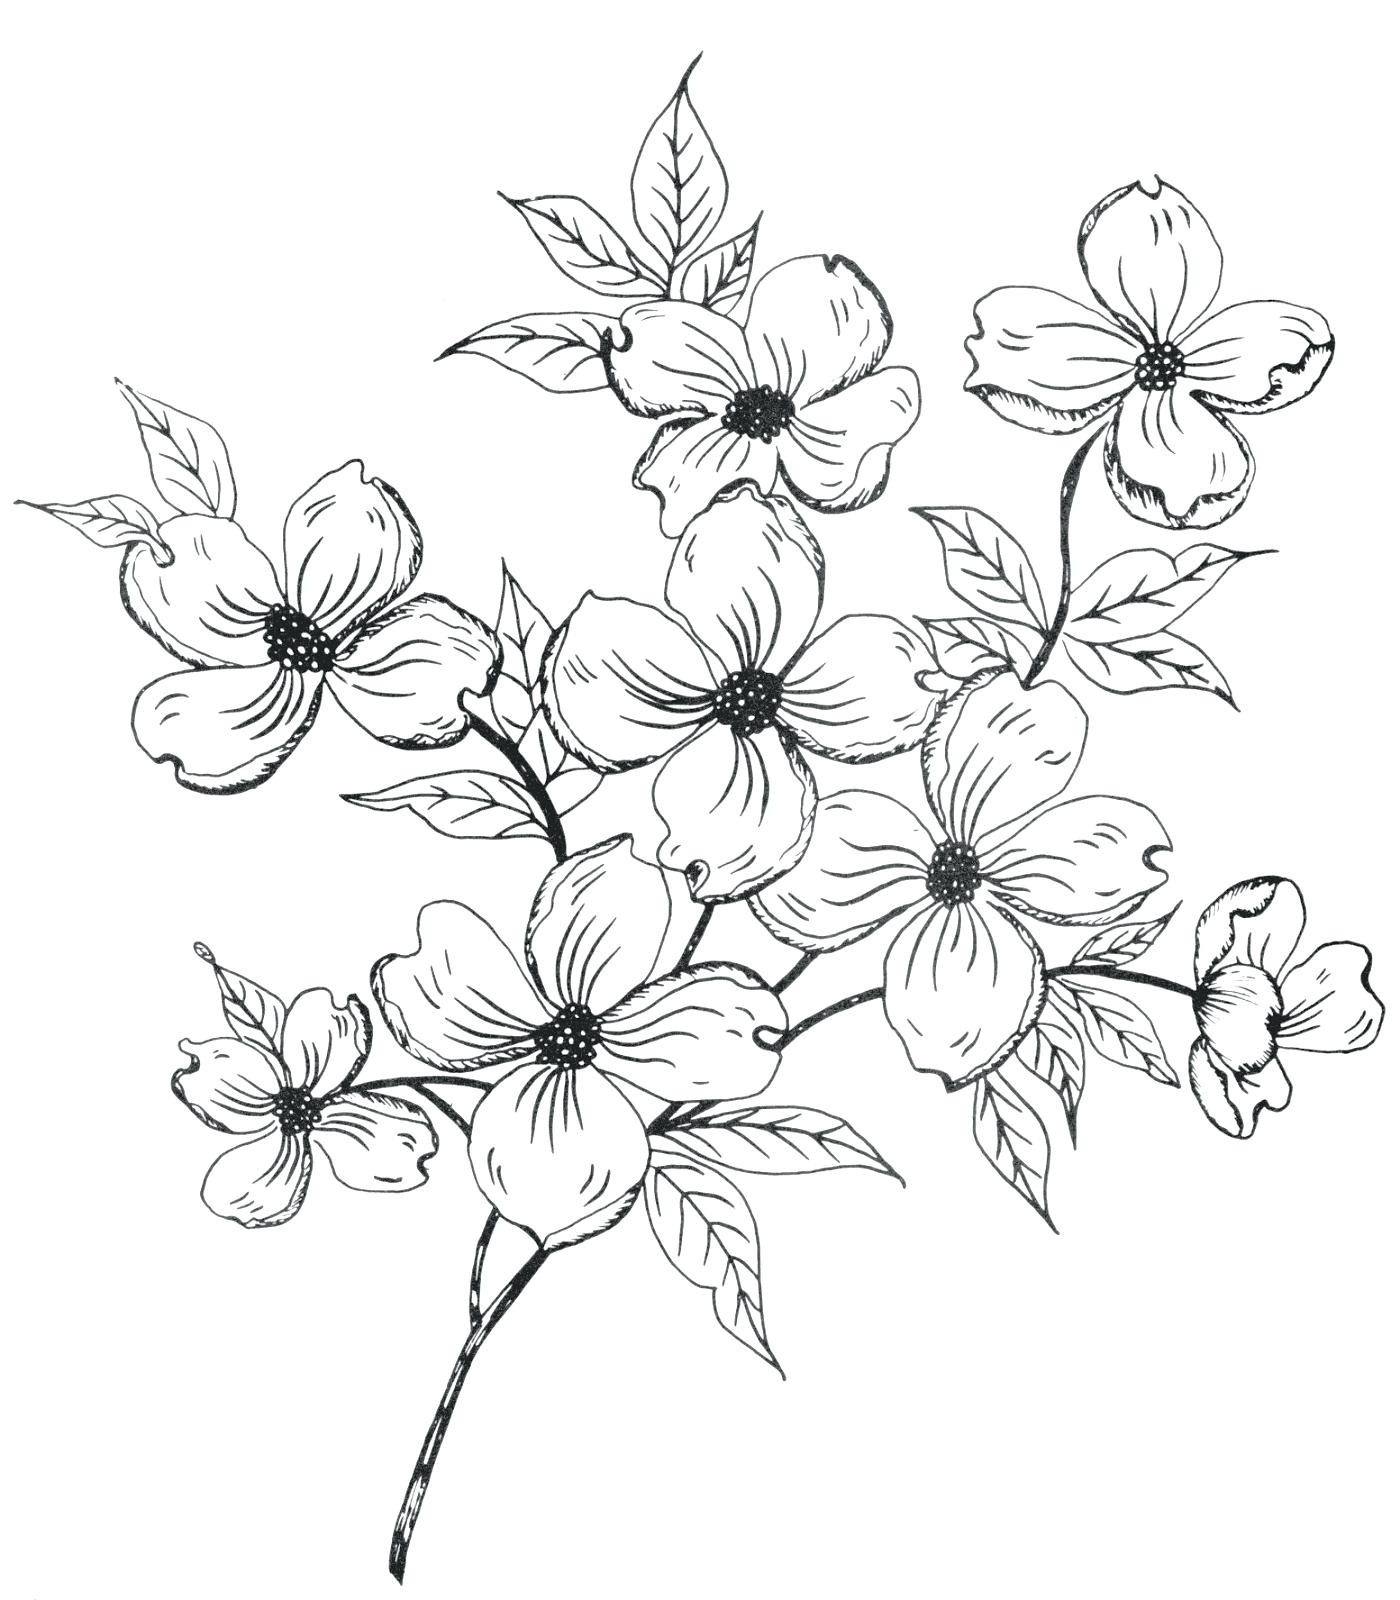 1400x1600 Coloring Pages Wonderful Flower Drawing Outline. Lily Flower